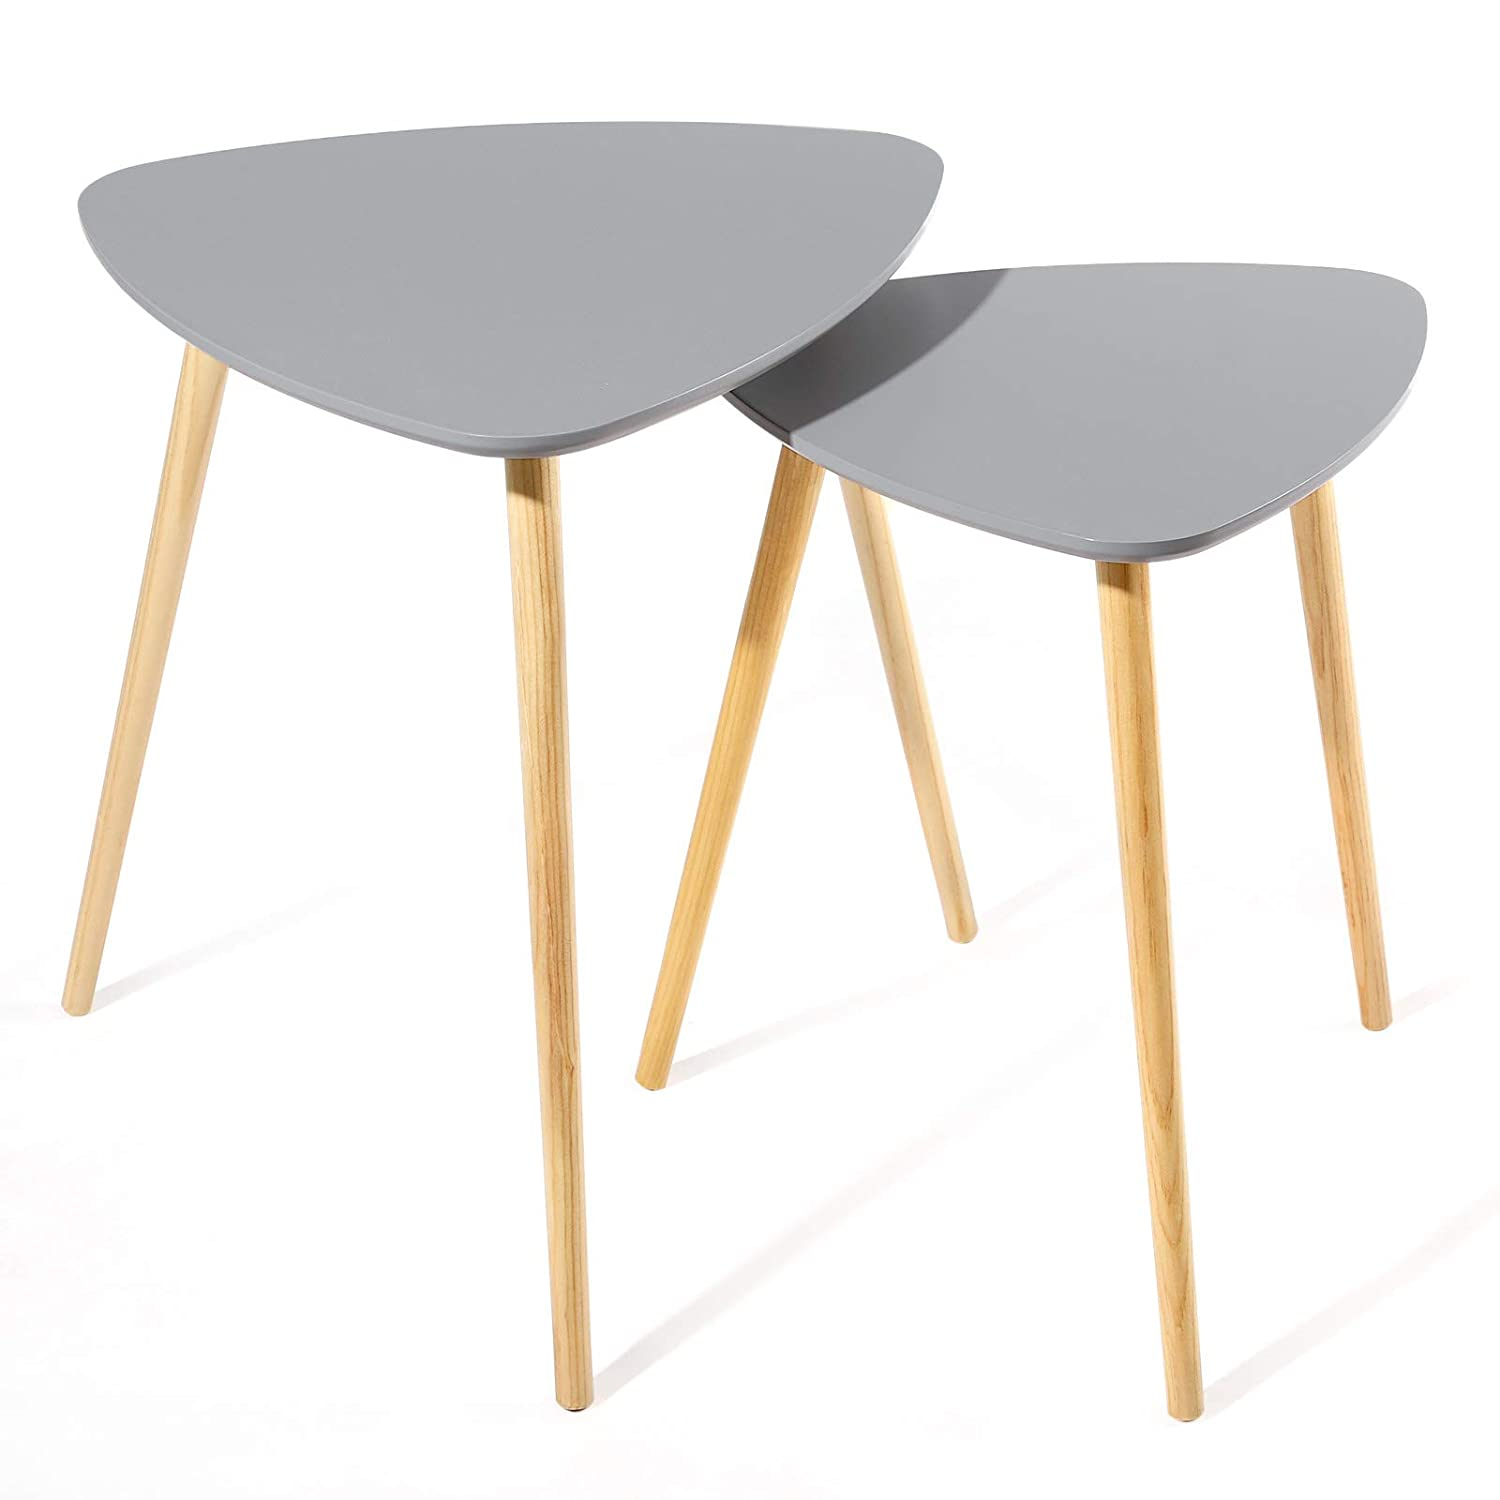 SONGMICS Scandinavian Nesting Side Table, Set of 2 Triangle End Table, Coffee Table with Solid Pine Legs, Nature Grey, LET10GY